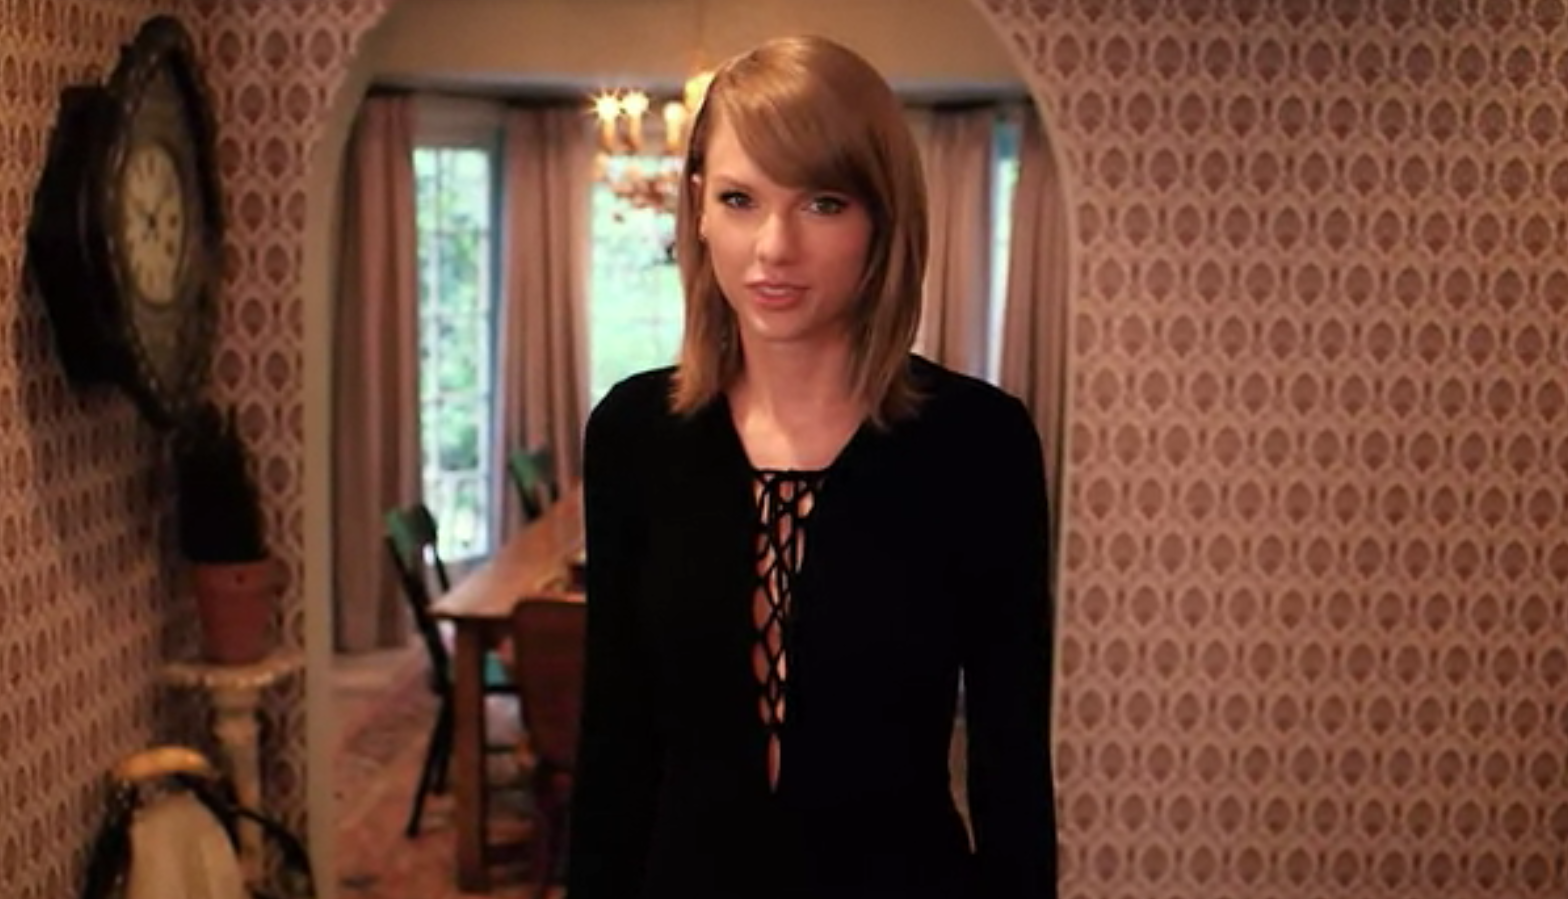 Get To Know Taylor Swift In 73 Questions